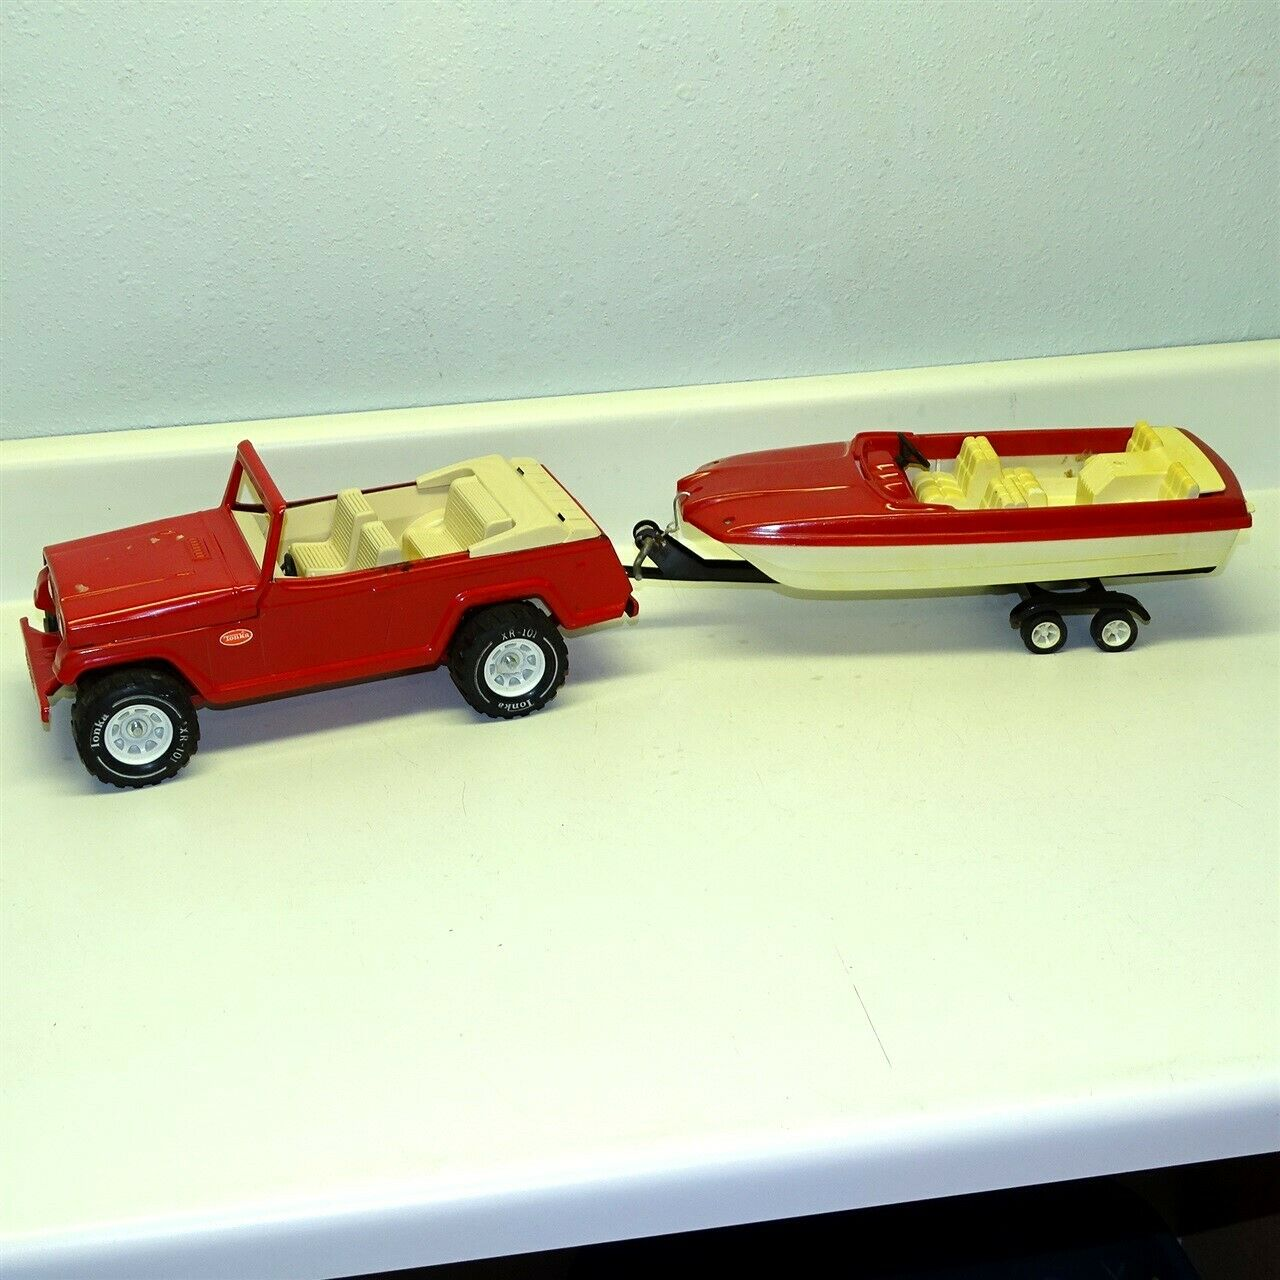 Vintage Tonka Red Jeepster Runabout Boat, Trailer, Truck, Pressed Steel Toy